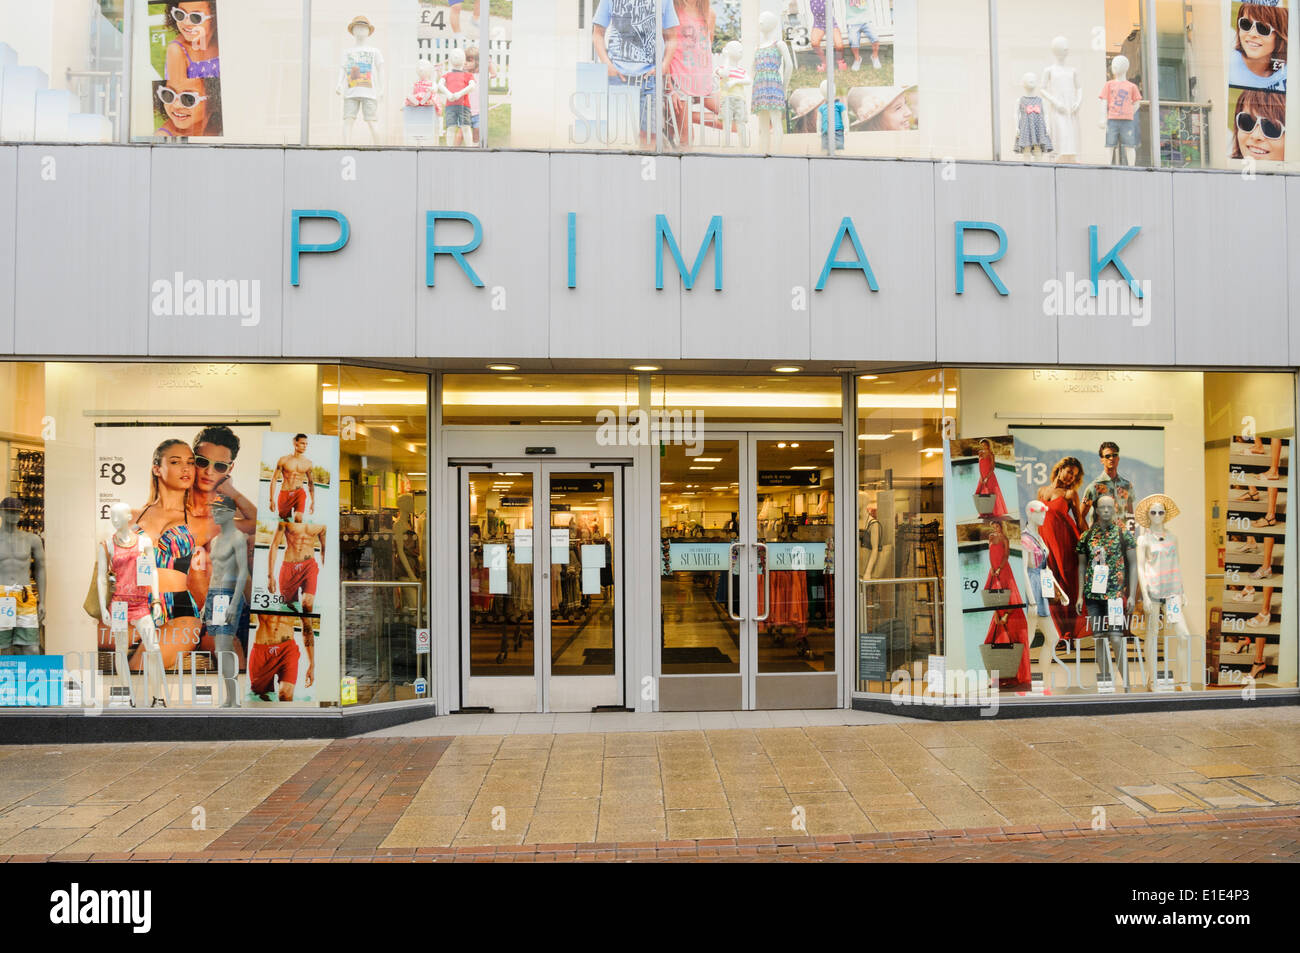 Primark store front - Stock Image